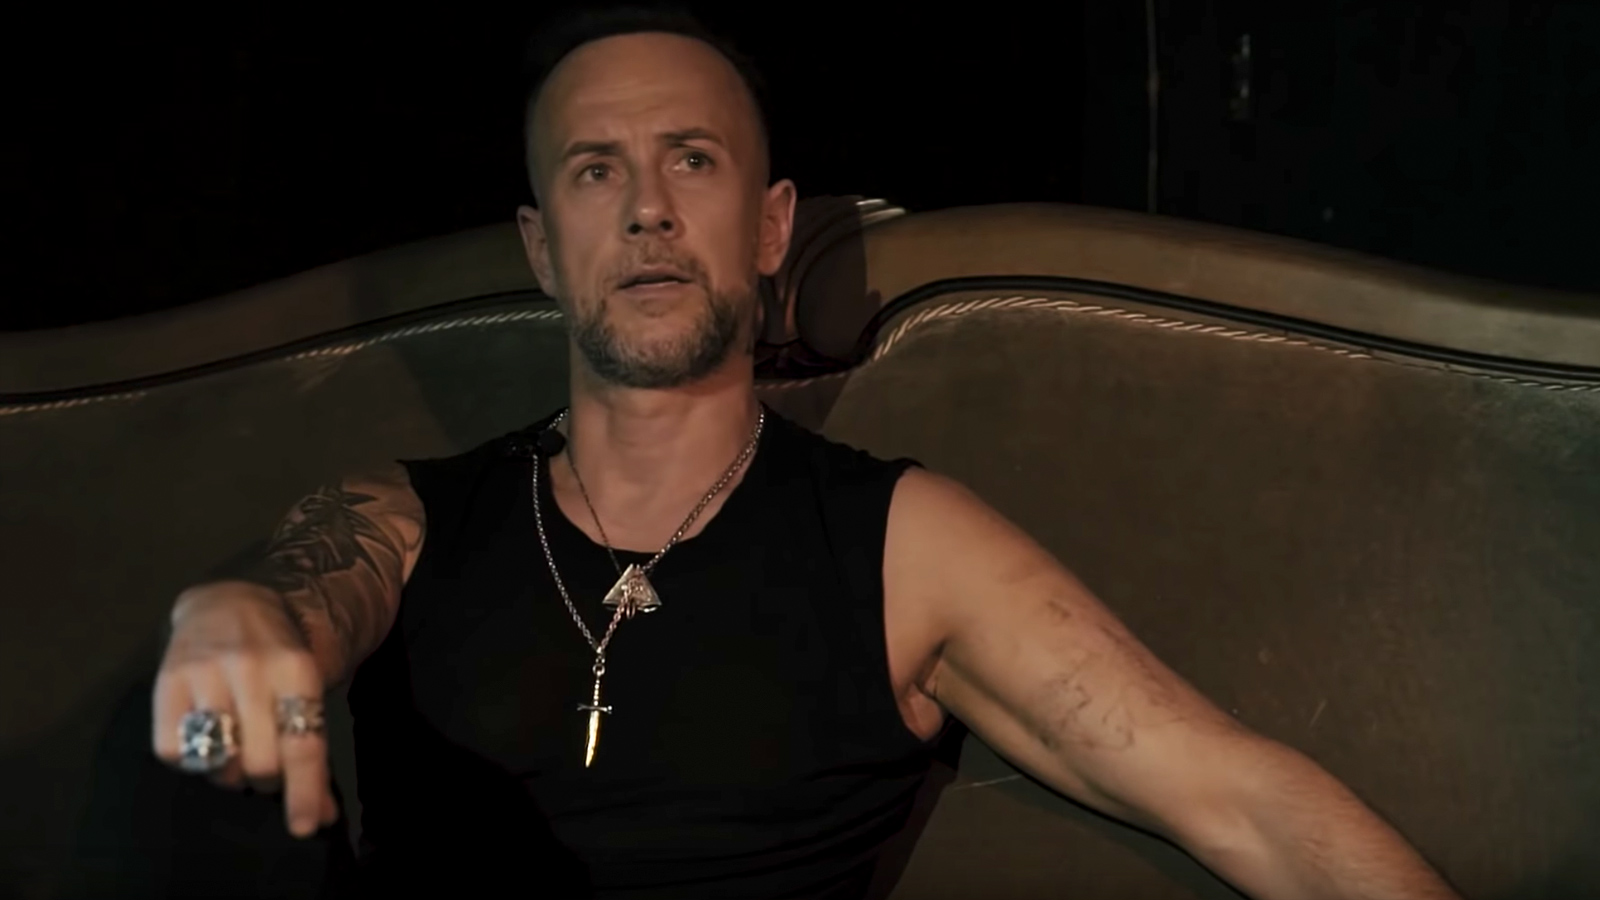 See Behemoth S Nergal Reveal How Cholo Goth Duo Prayers Influenced